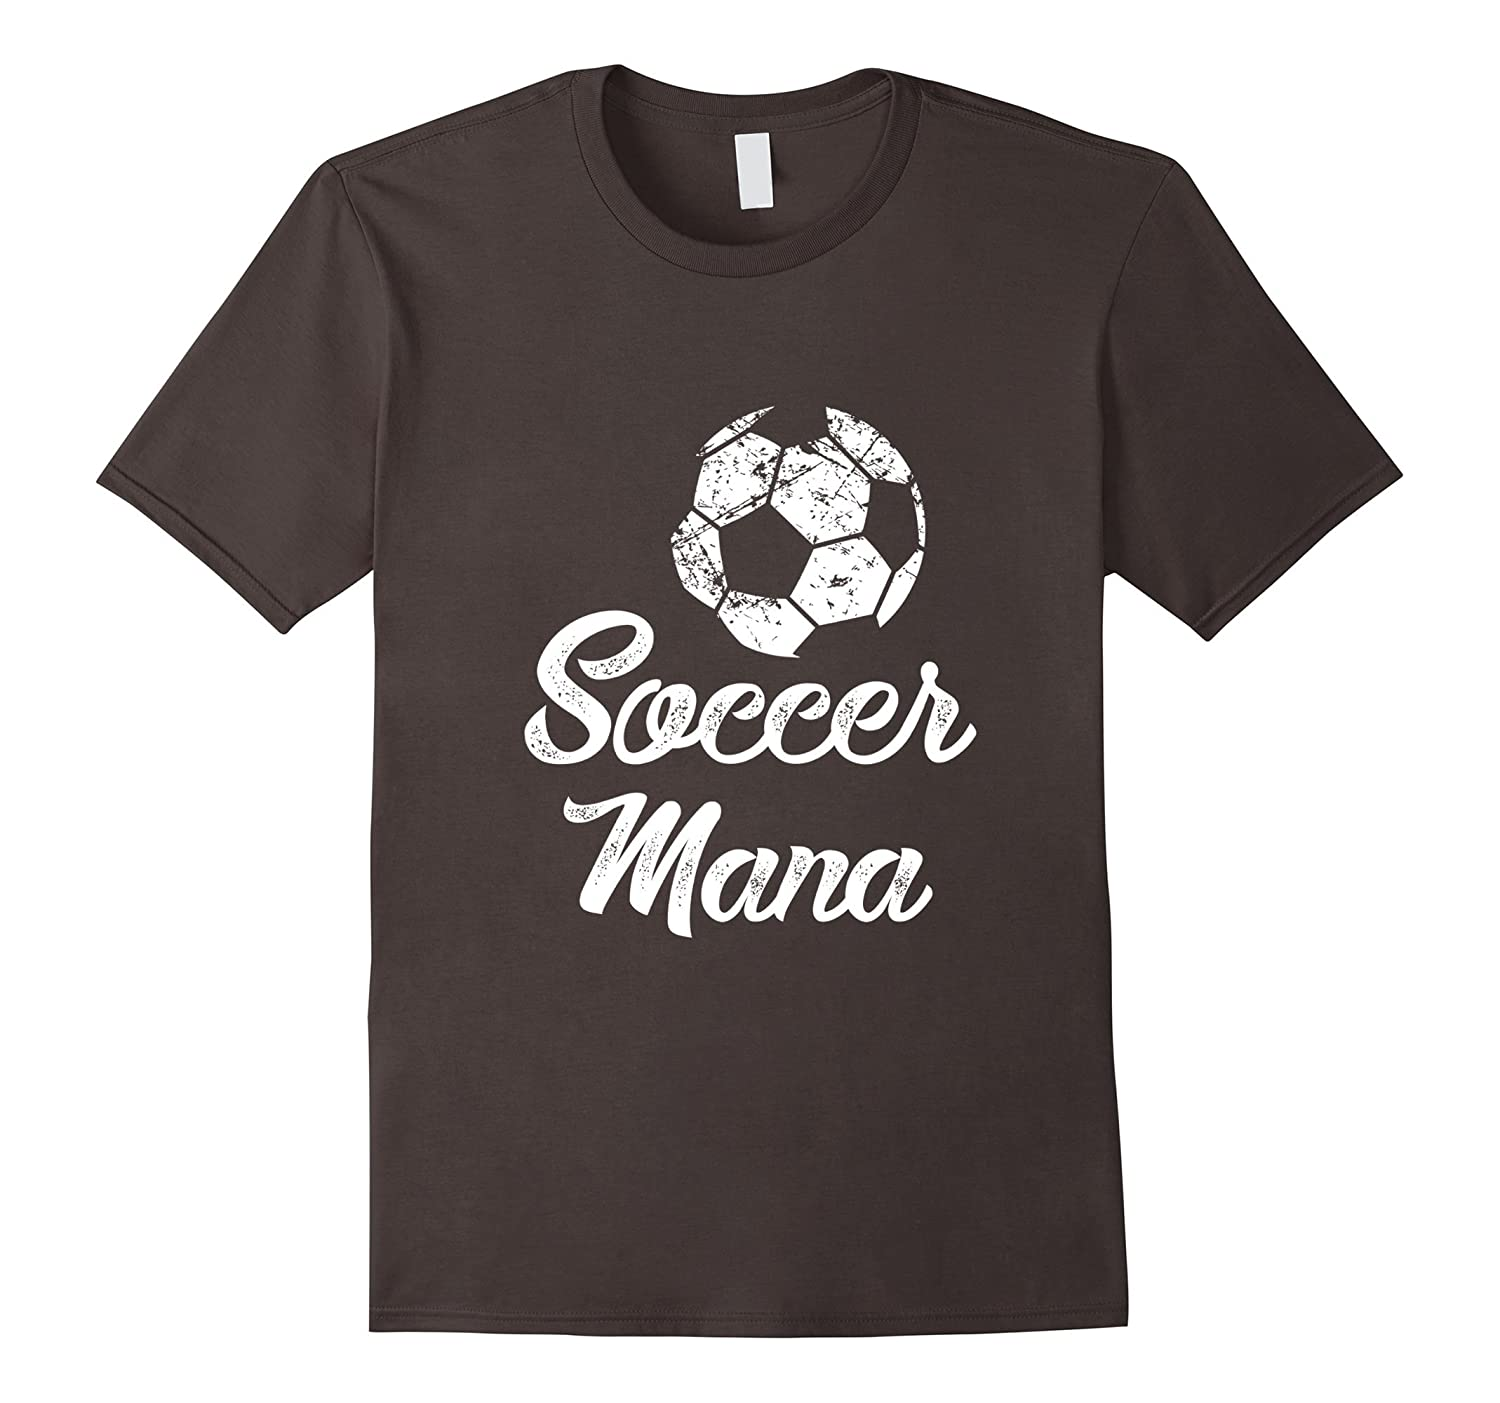 Soccer Mana Shirt, Cute Funny Player Fan Gift